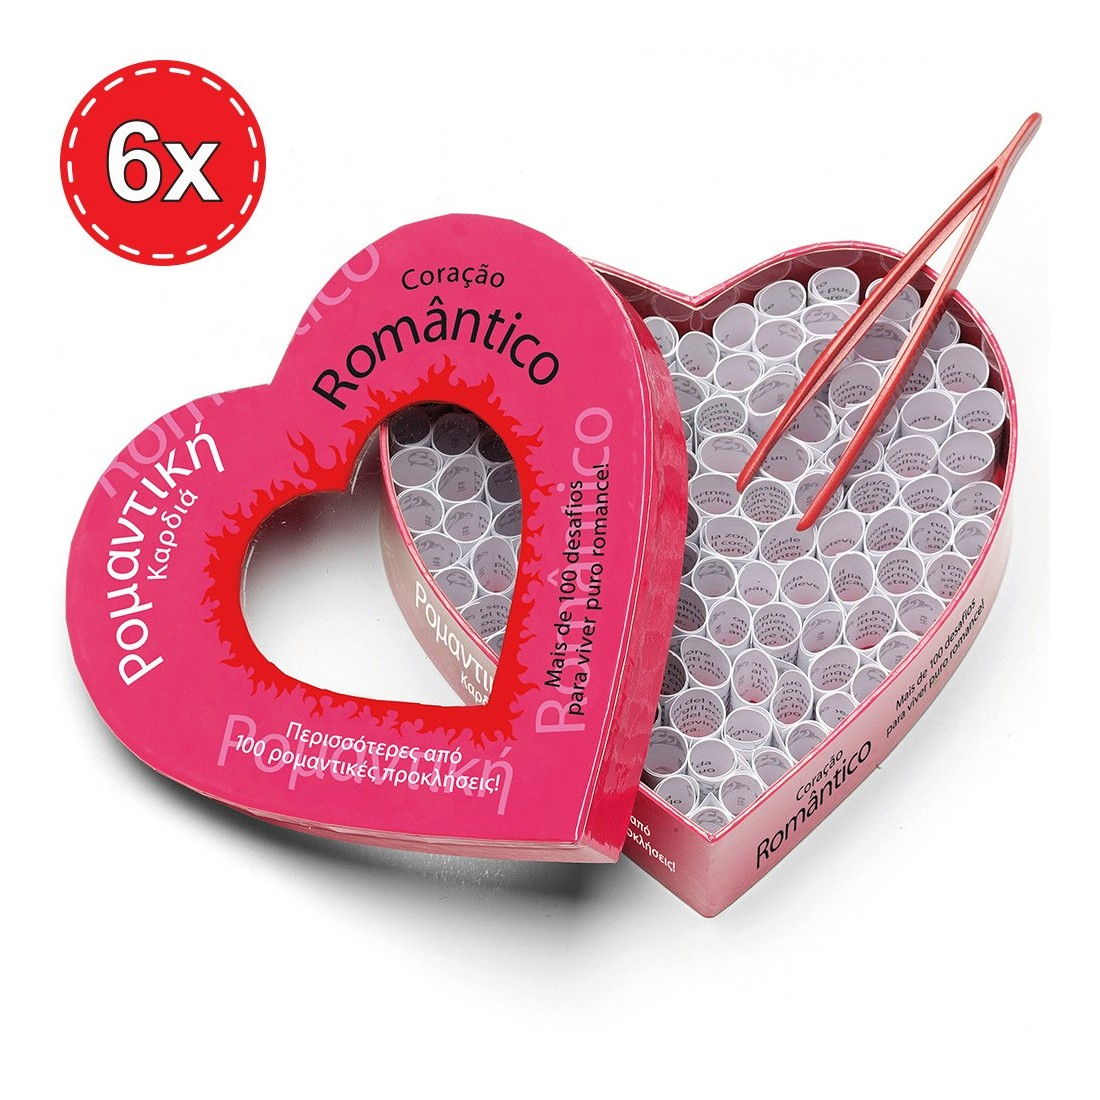 PACK WITH 6 ROMANTIC HEART GAMES IN PORTUGUESE AND GREEK